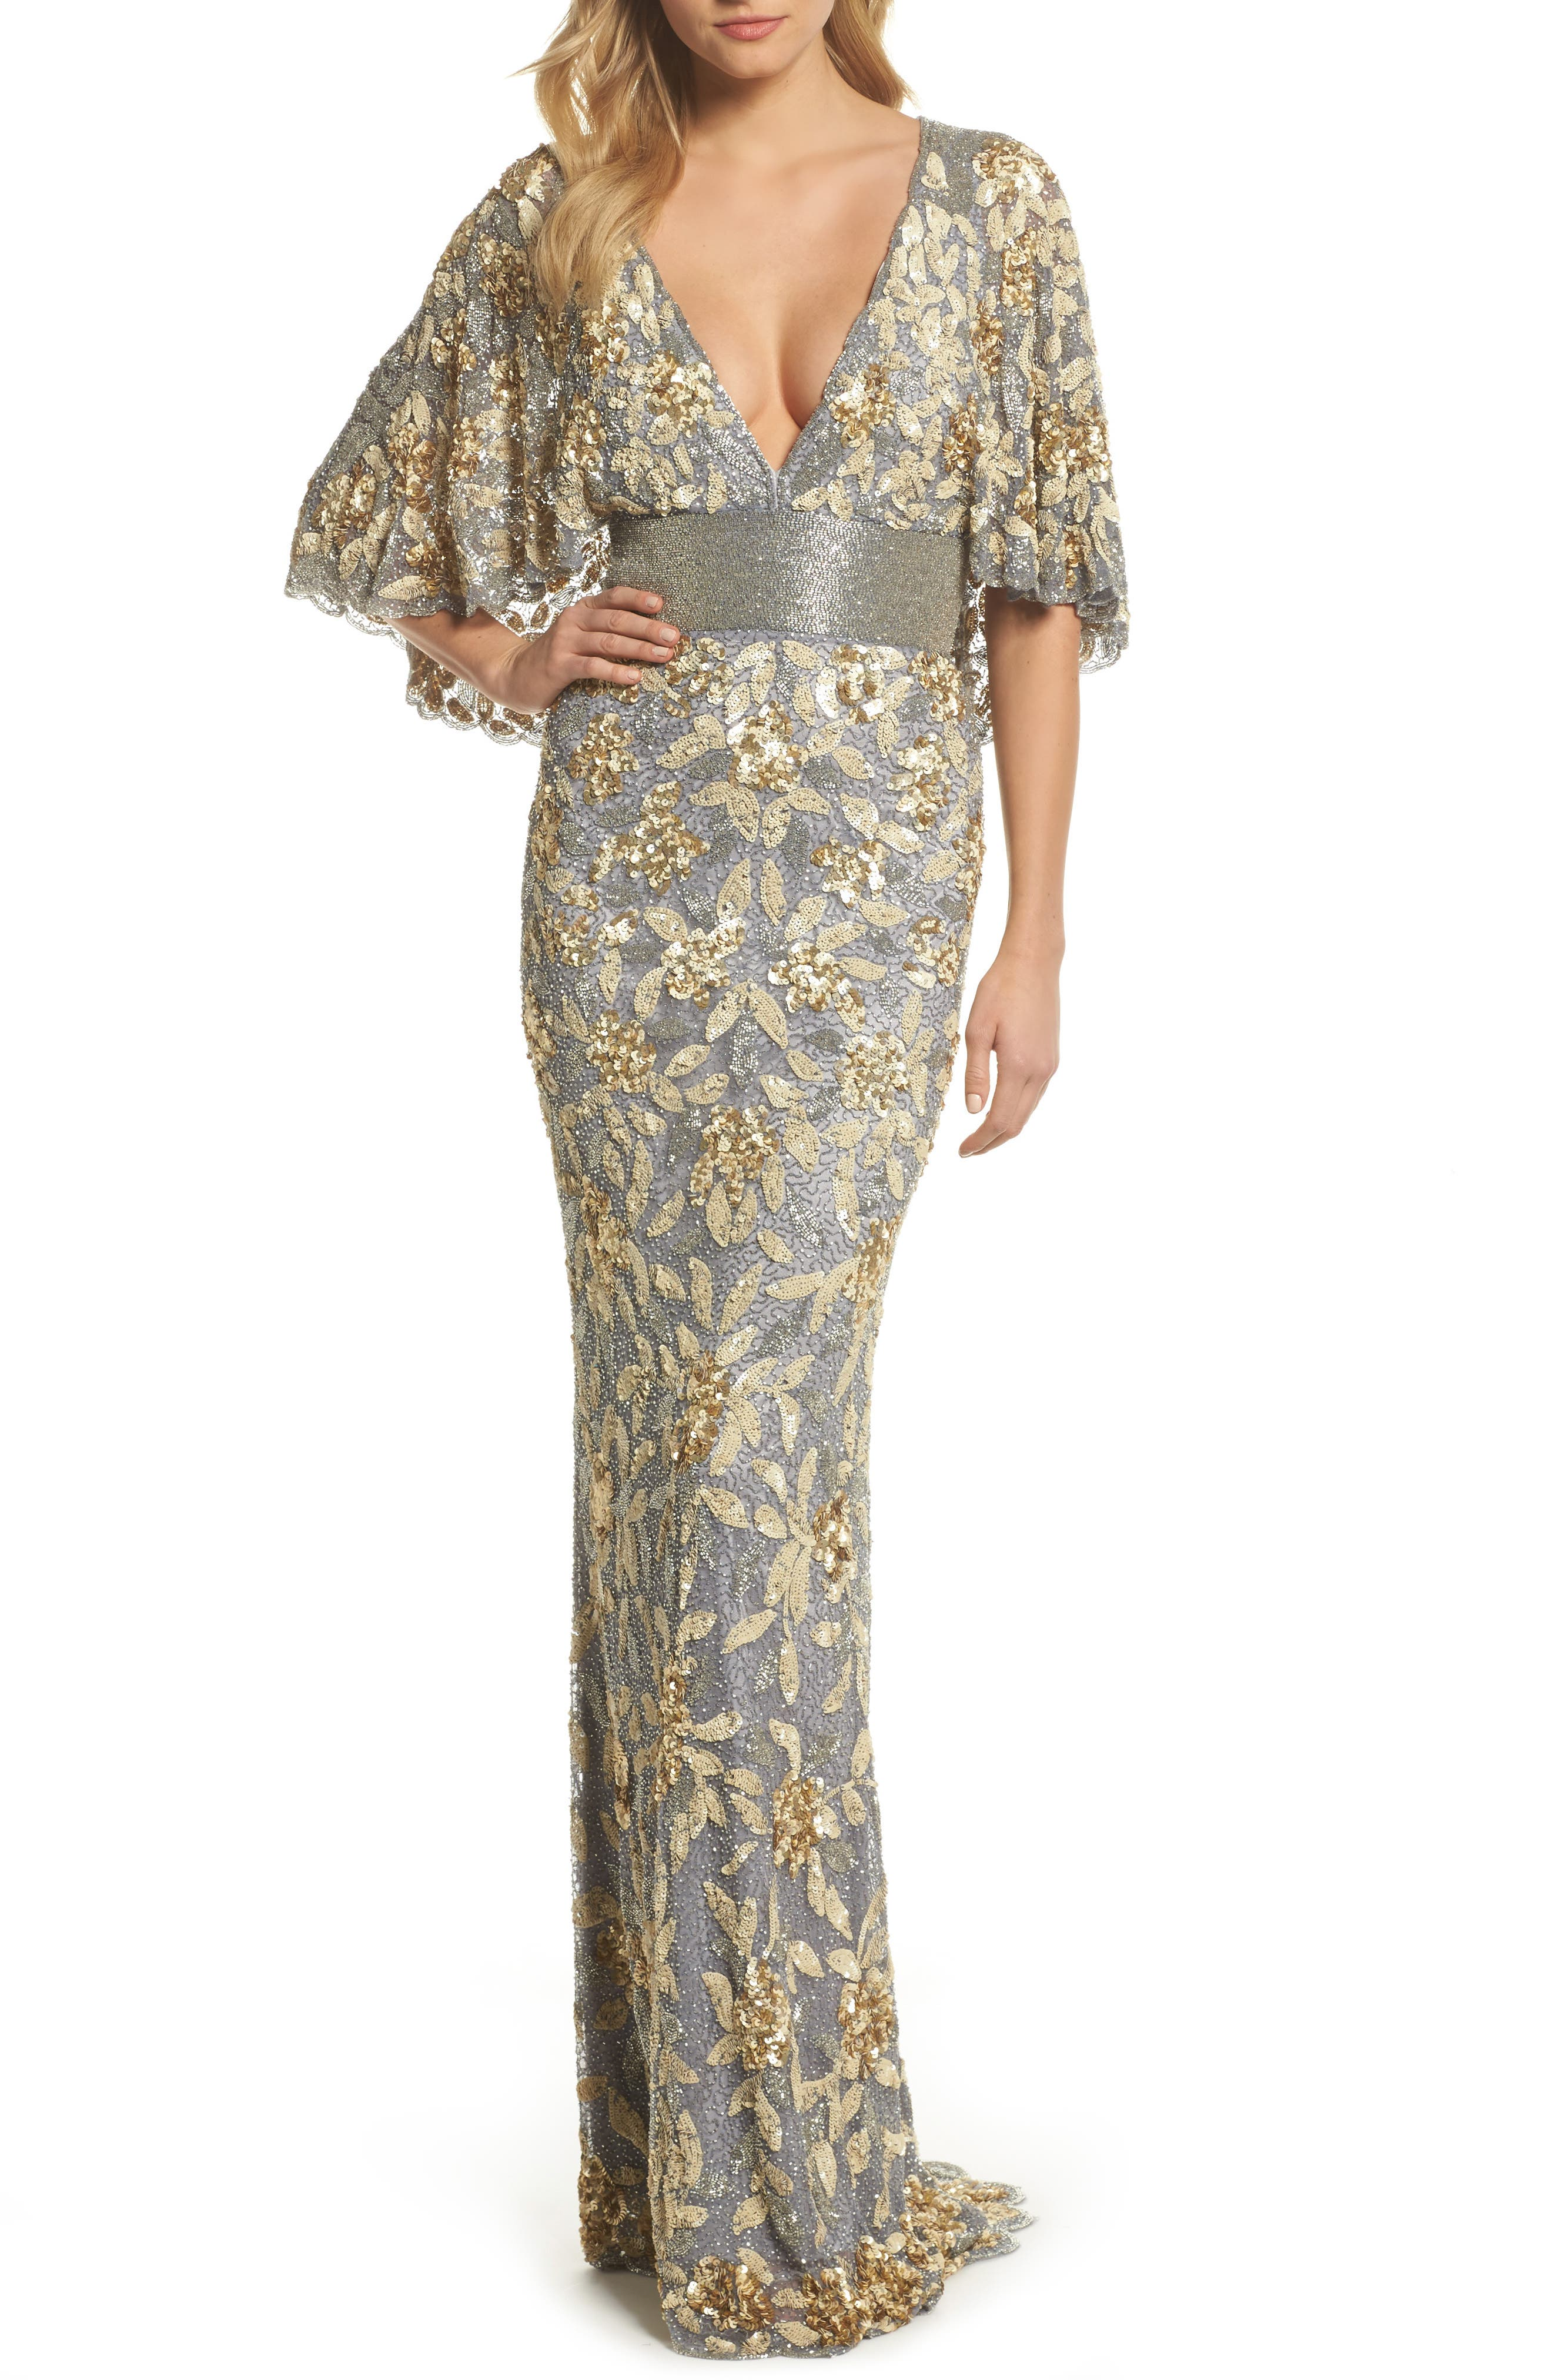 MAC DUGGAL, Sequin & Bead Embellished Gown, Main thumbnail 1, color, PLATINUM/ GOLD